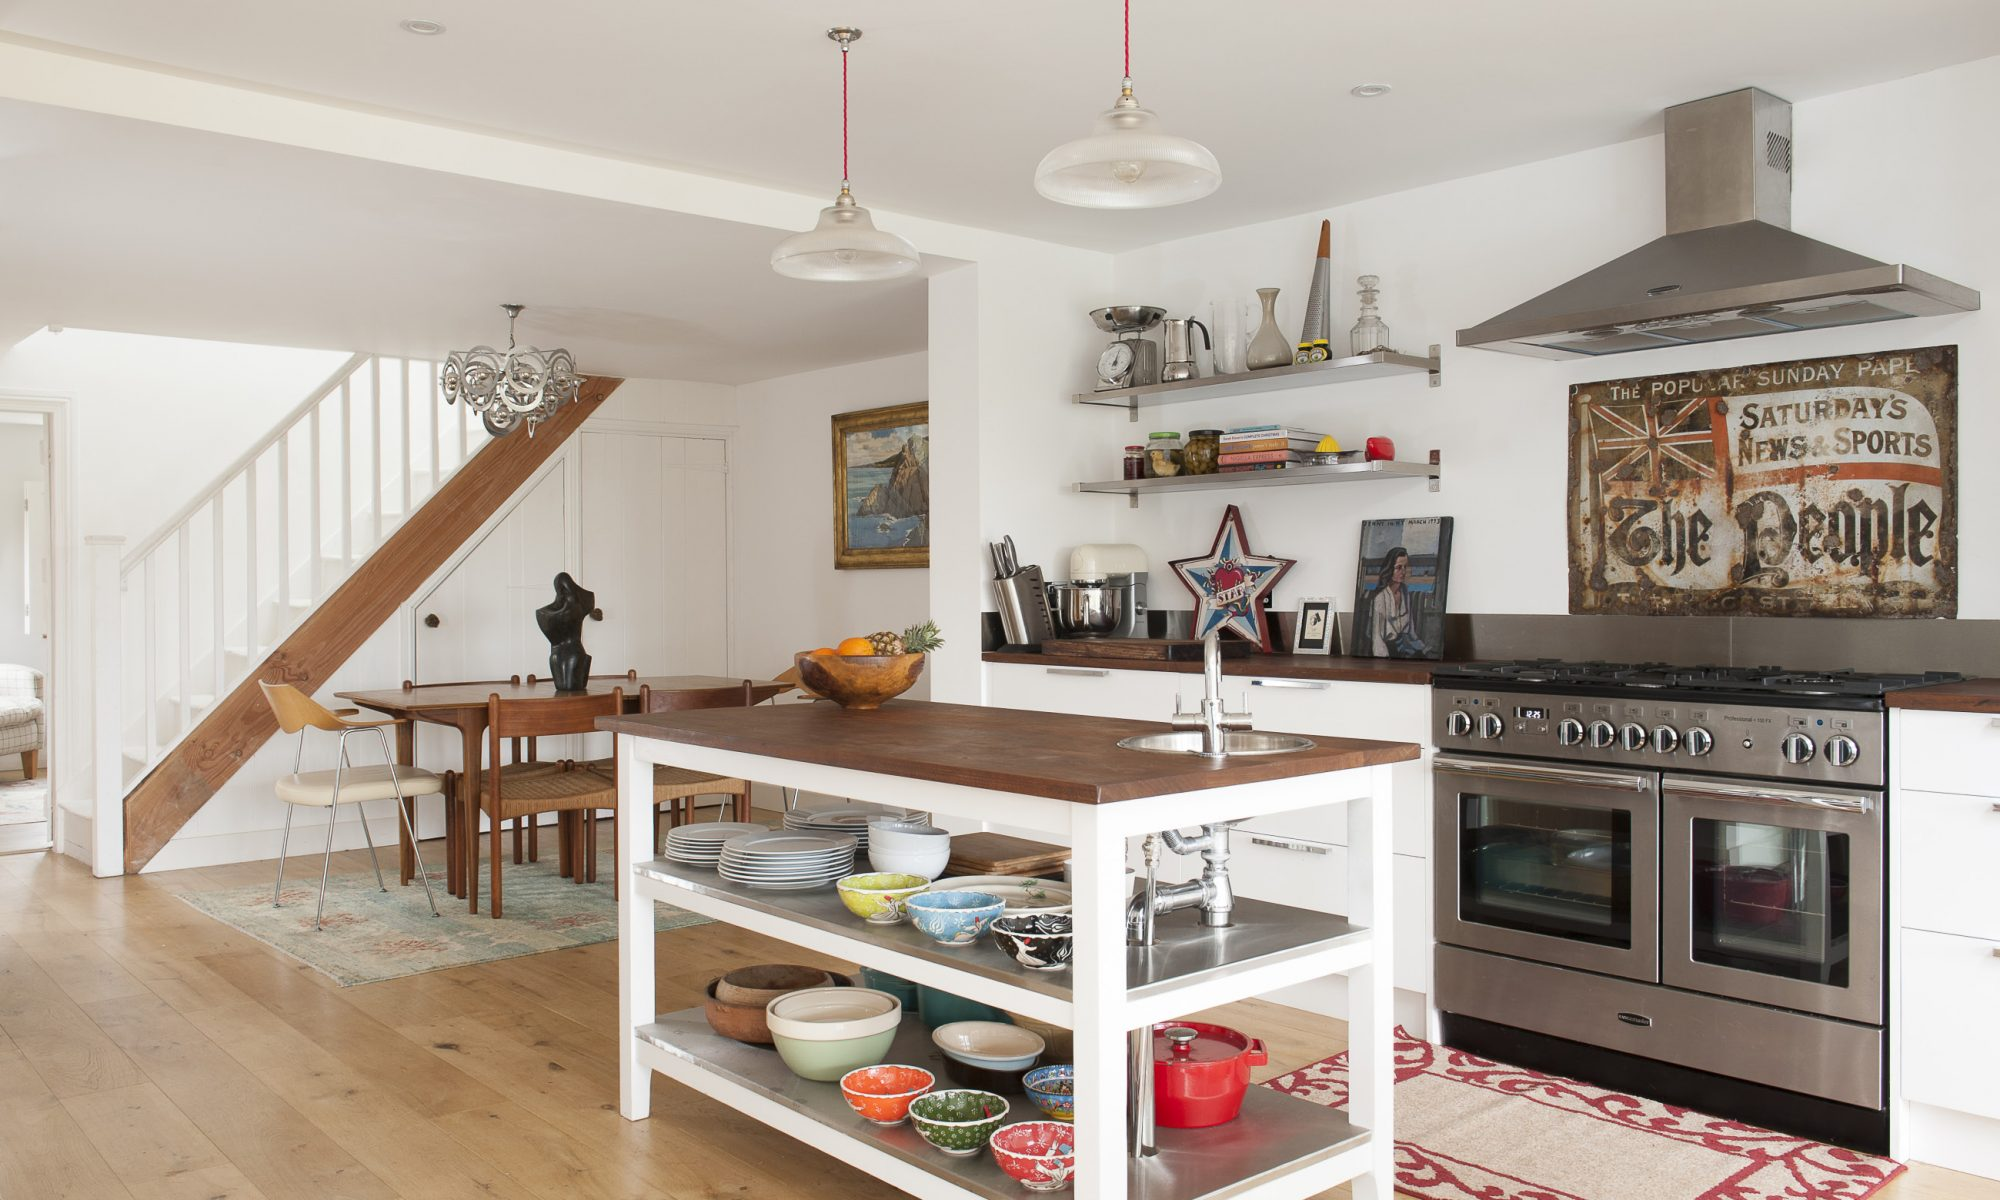 A childhood love of horses led Jenny and her husband Dave to look for a home near to where they stabled their horse in the Sussex High Weald. After much searching, they finally found the perfect project – transforming a semi-detached Victorian cottage into an effortlessly stylish abode...